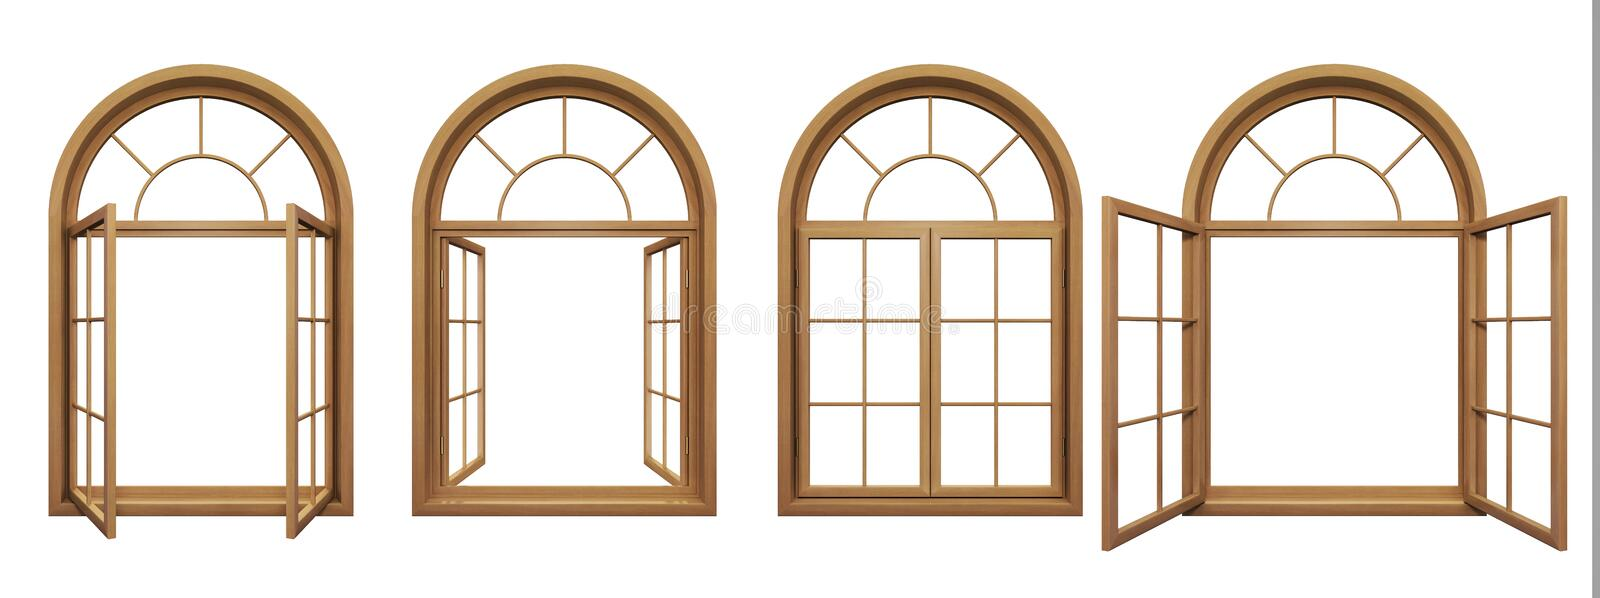 Collection of isolated wooden arched windows. Collection of wooden arched windows isolated on white royalty free illustration